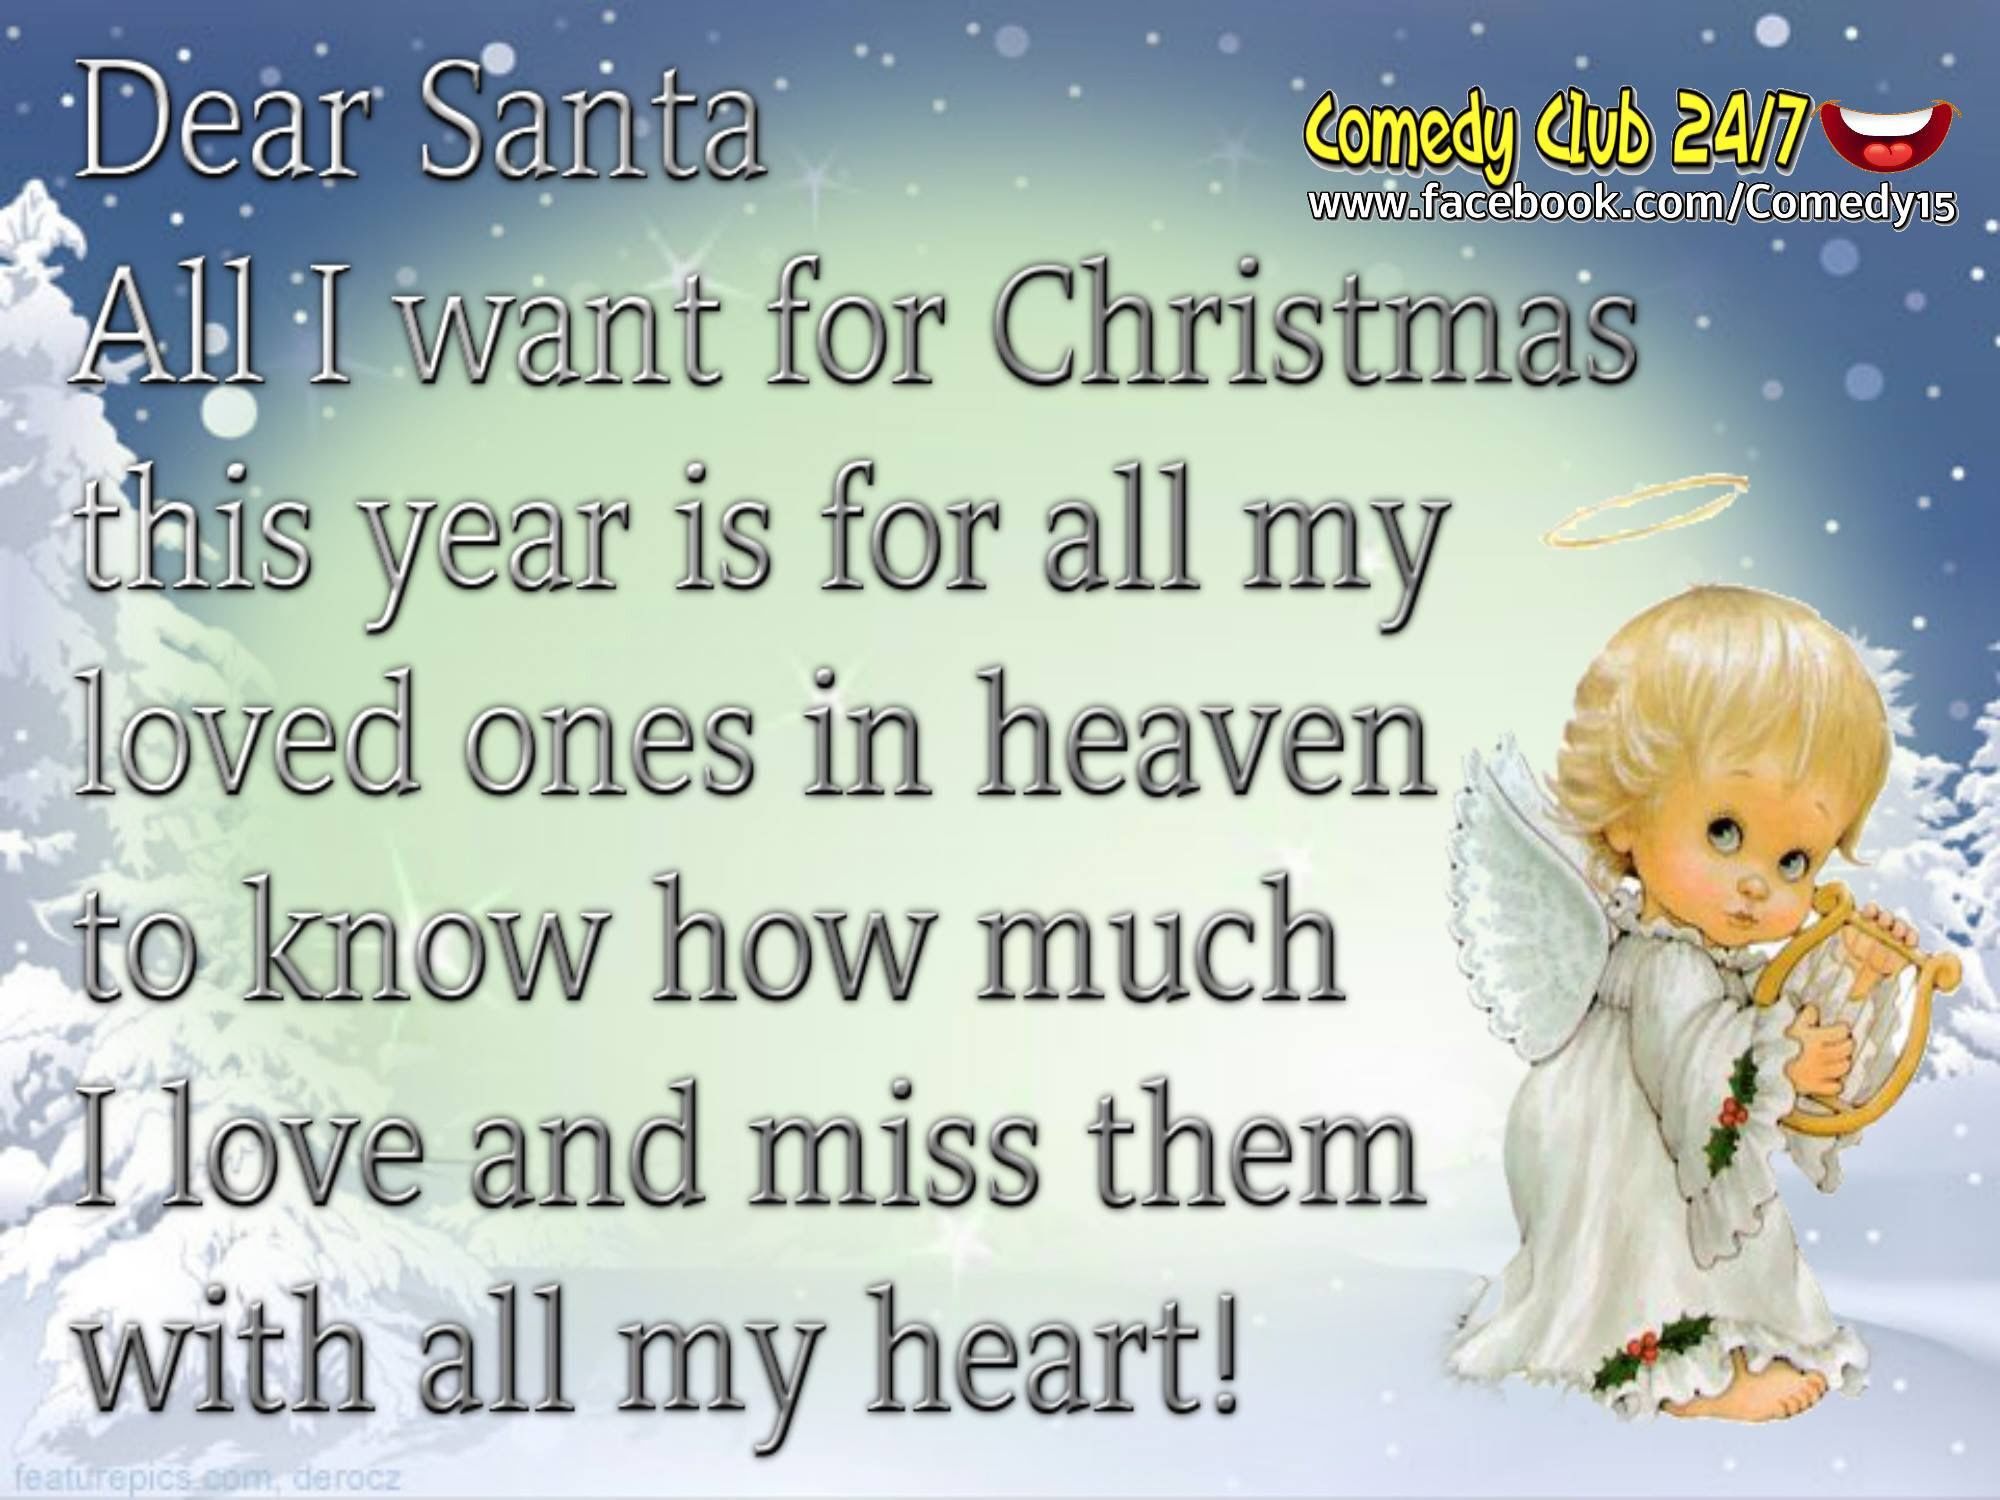 Dear Santa I Want All My Loved es In Heaven To Know I Love Them